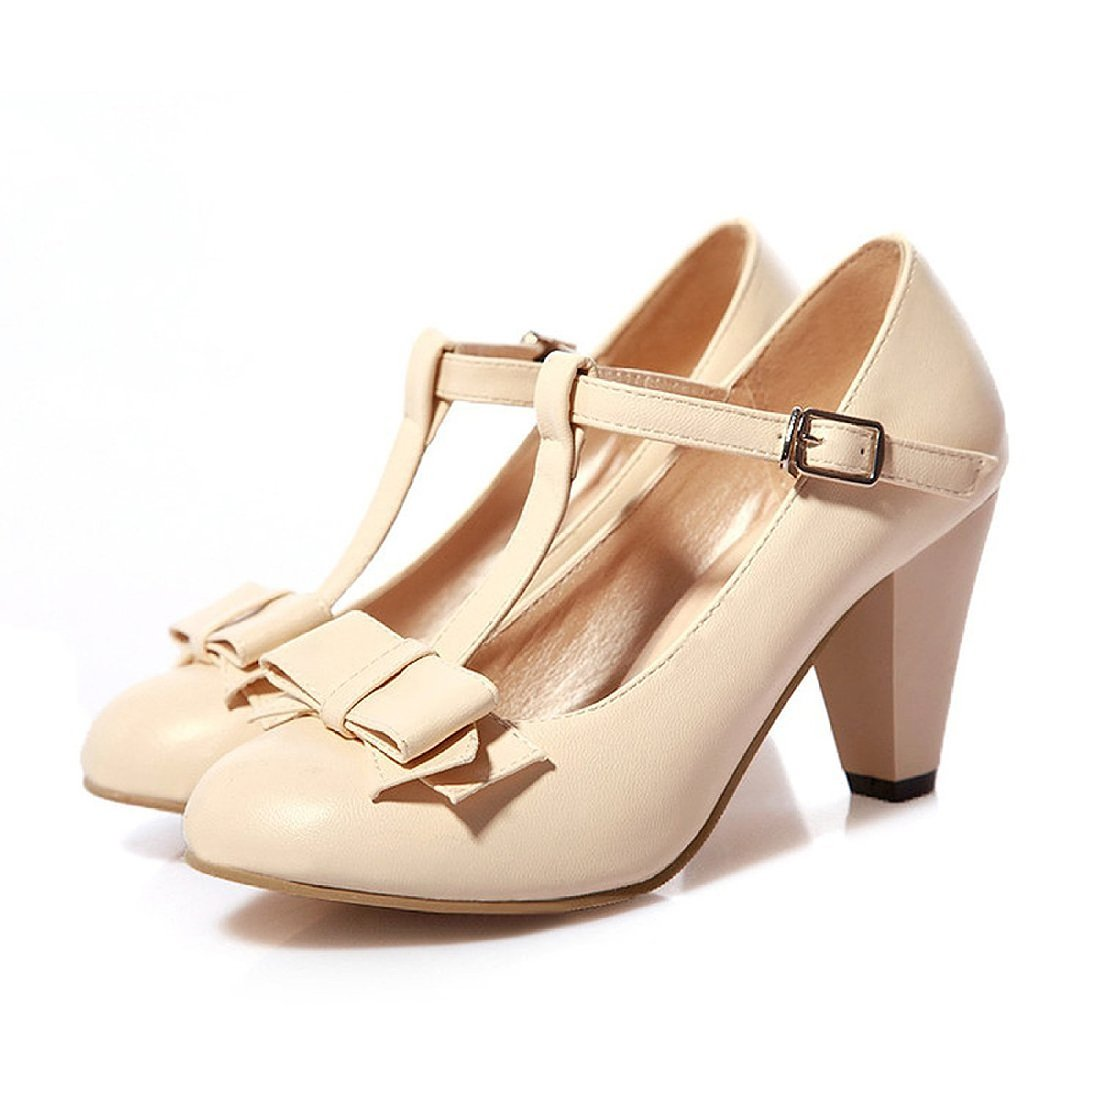 01e586353d5 Susanny Women's Chic Sweet Round Toe T-Strap Bows Adorable Buckle High Cone  Heel Mary Janes Dress Pumps